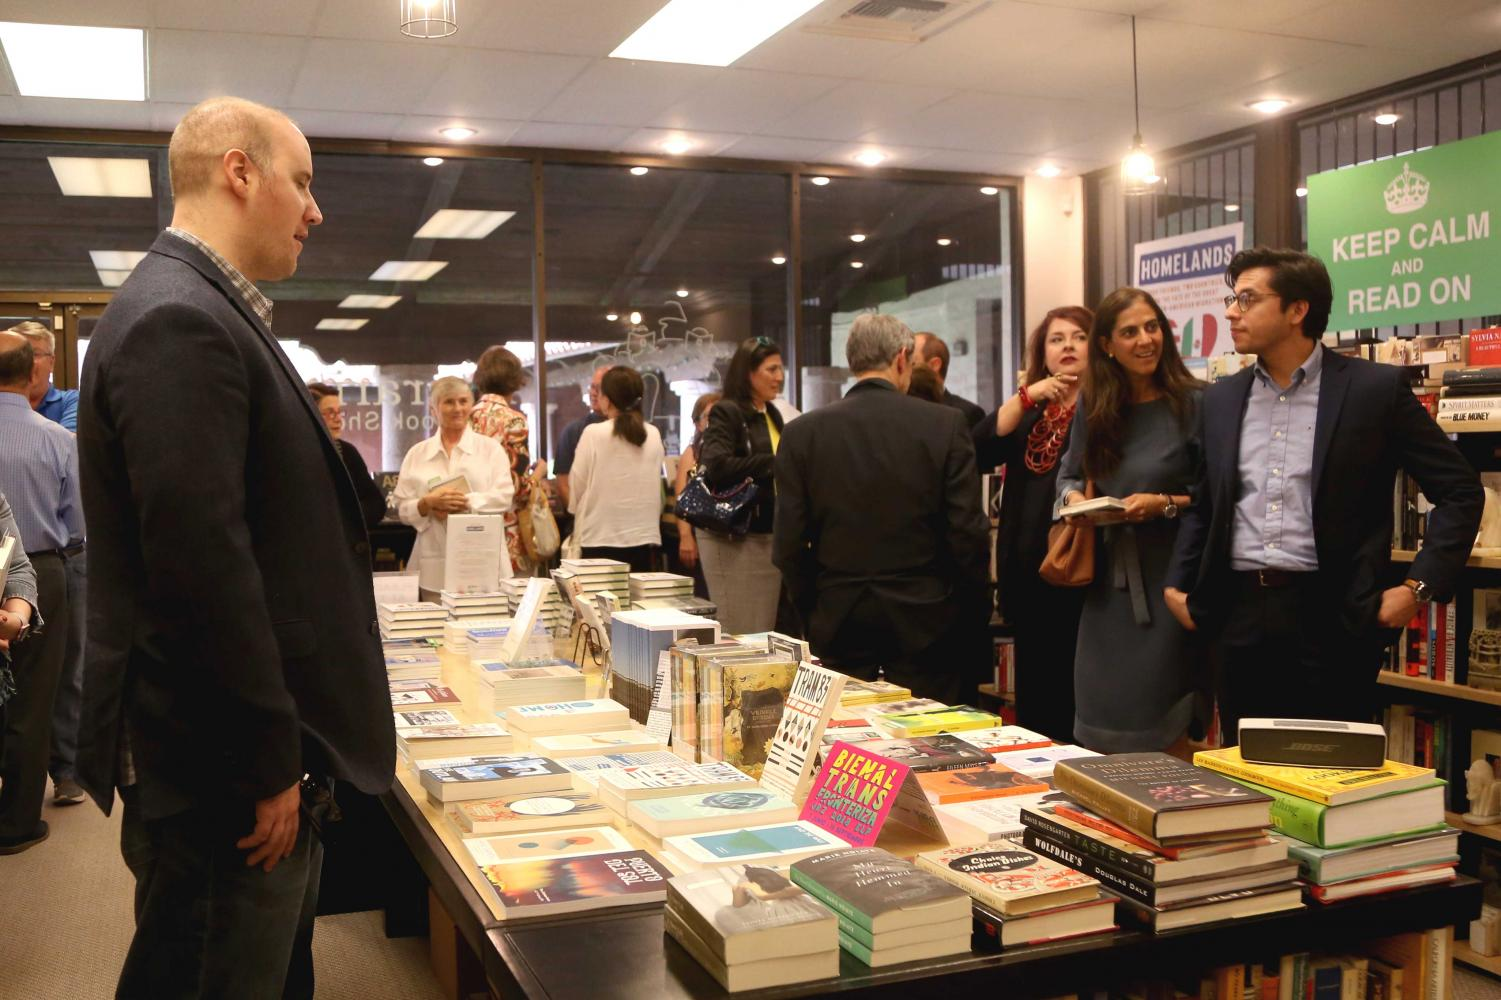 Literarity+Book+Shop+held+a+book+signing+for+Alfredo+Corchado%27s+new+book+%22HOMELANDS%3A+Four+Friends%2C+Two+Countries%2C+and+the+Fate+of+the+Great+Mexican-American+Migration%22+on+Wednesday%2C+June+6.